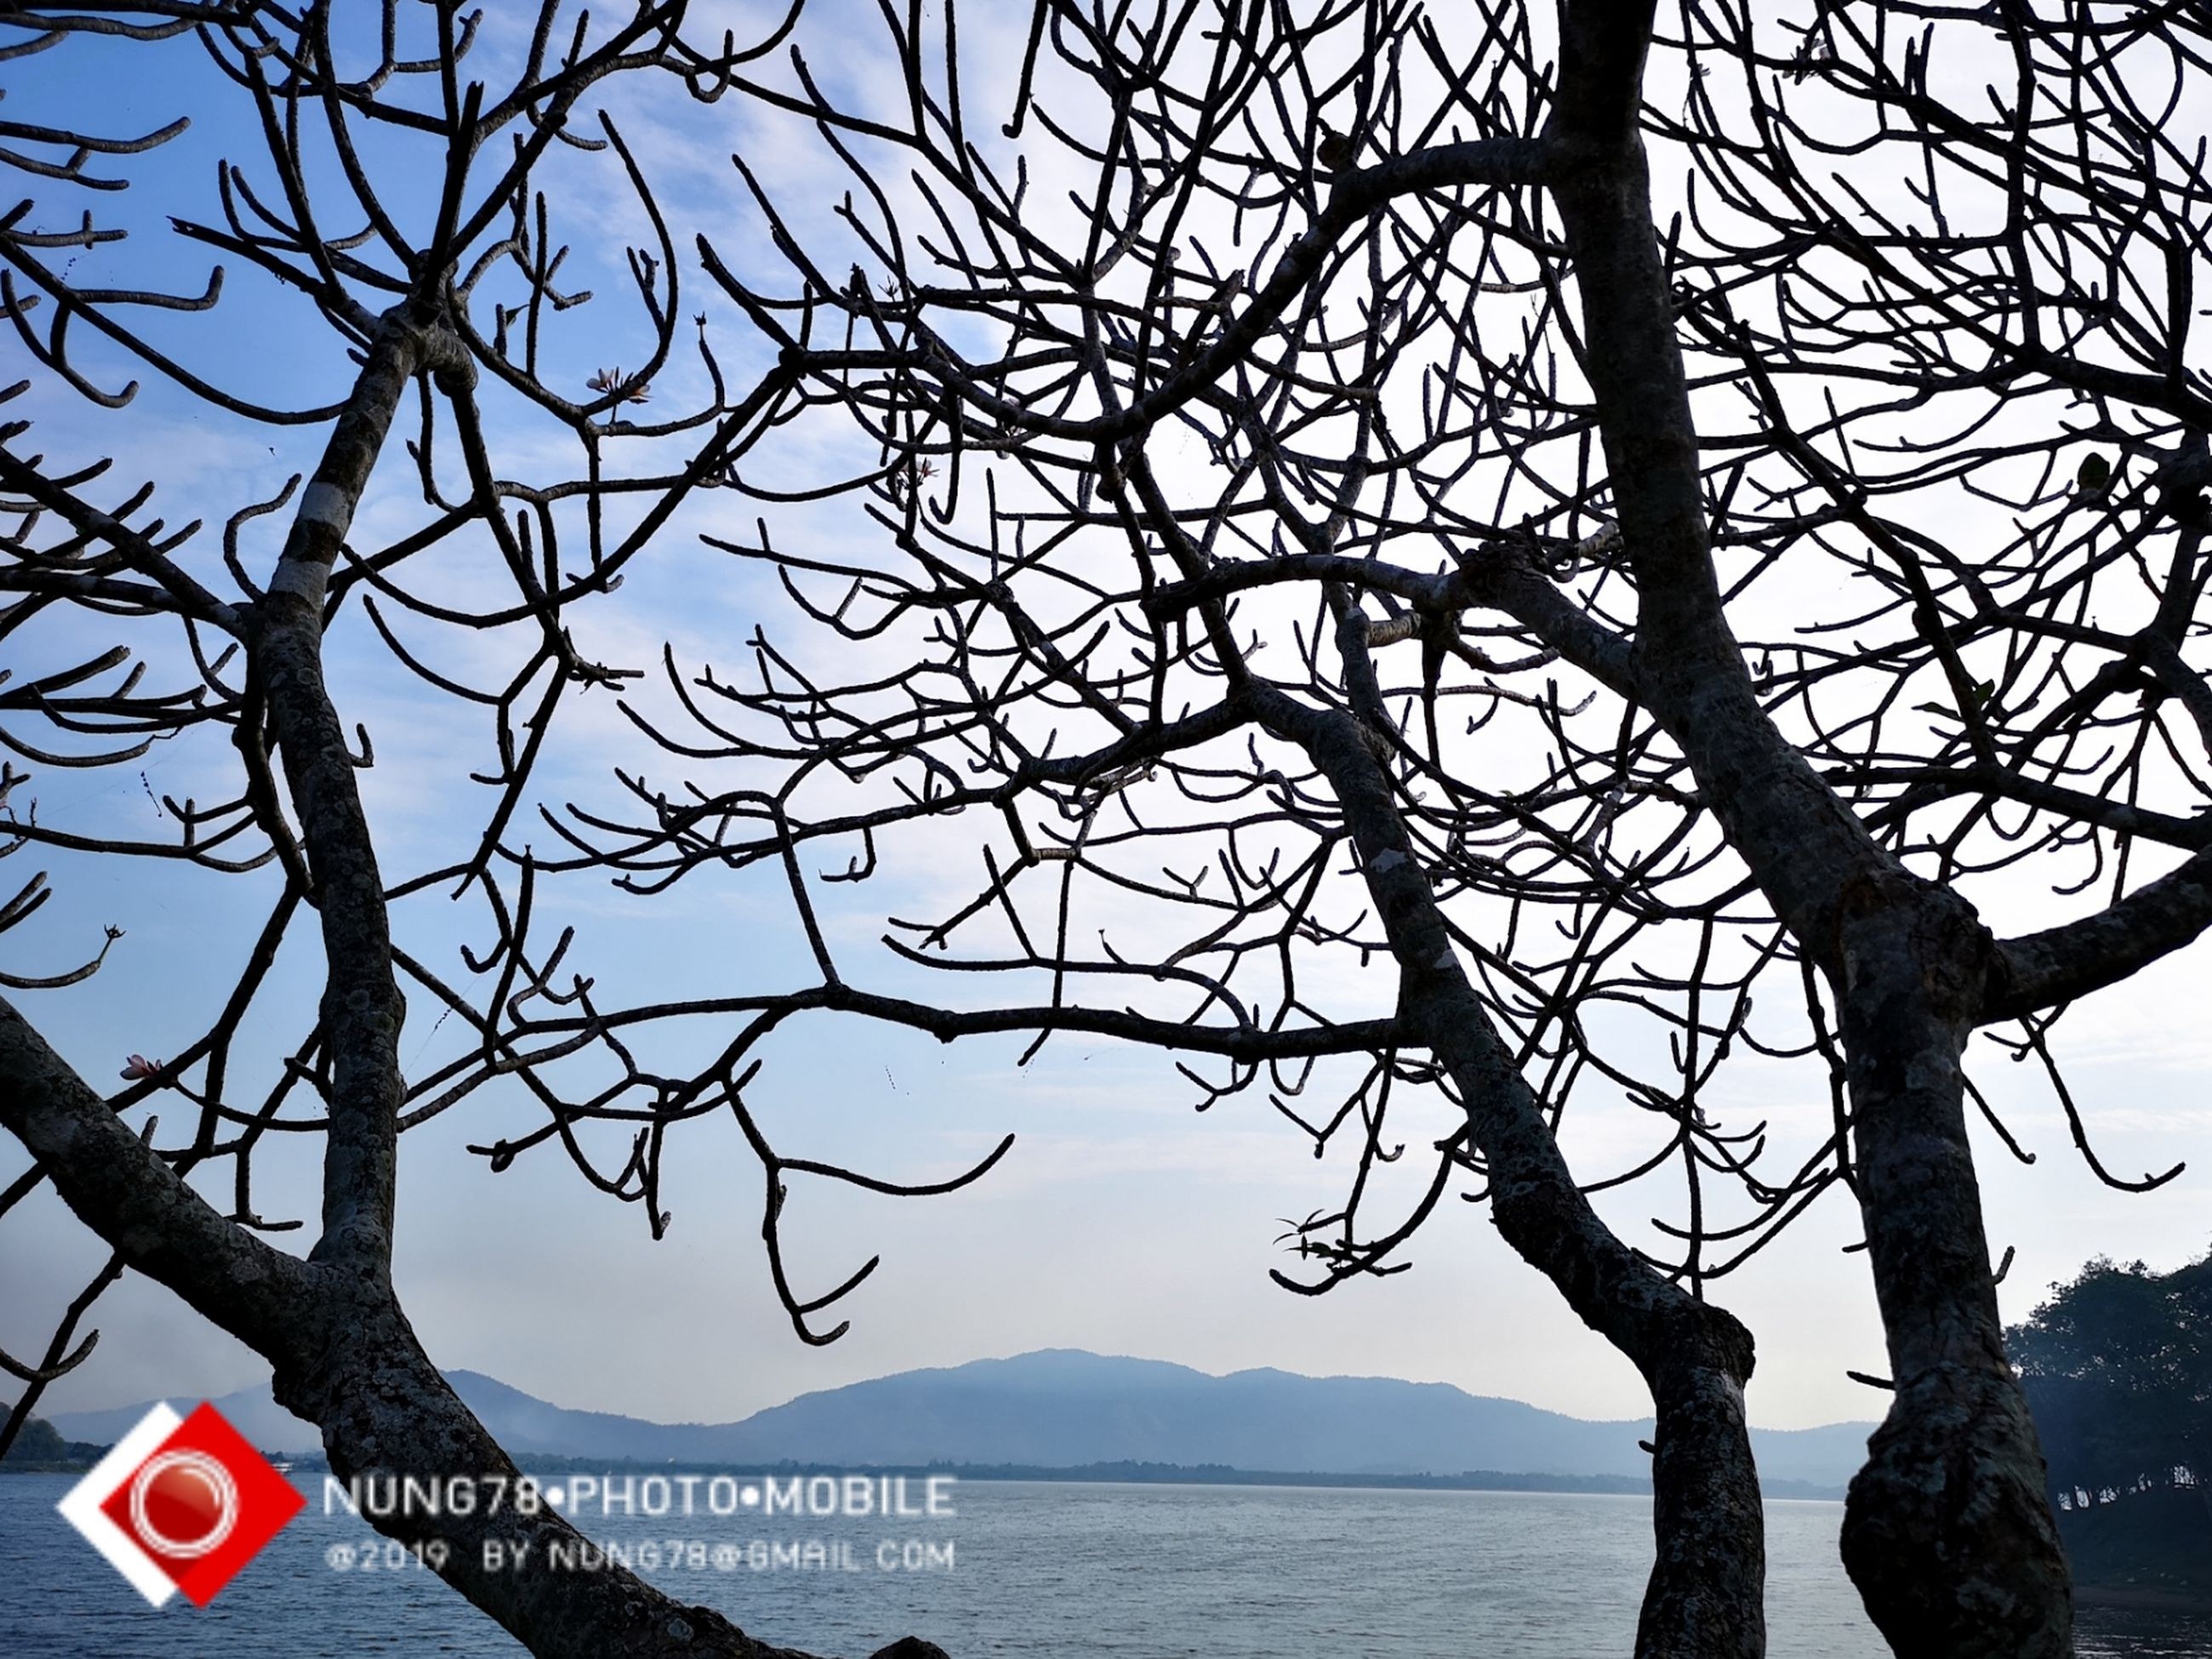 tree, branch, water, bare tree, sky, sea, nature, trunk, tree trunk, scenics - nature, tranquility, plant, beauty in nature, no people, text, tranquil scene, day, outdoors, clear sky, message